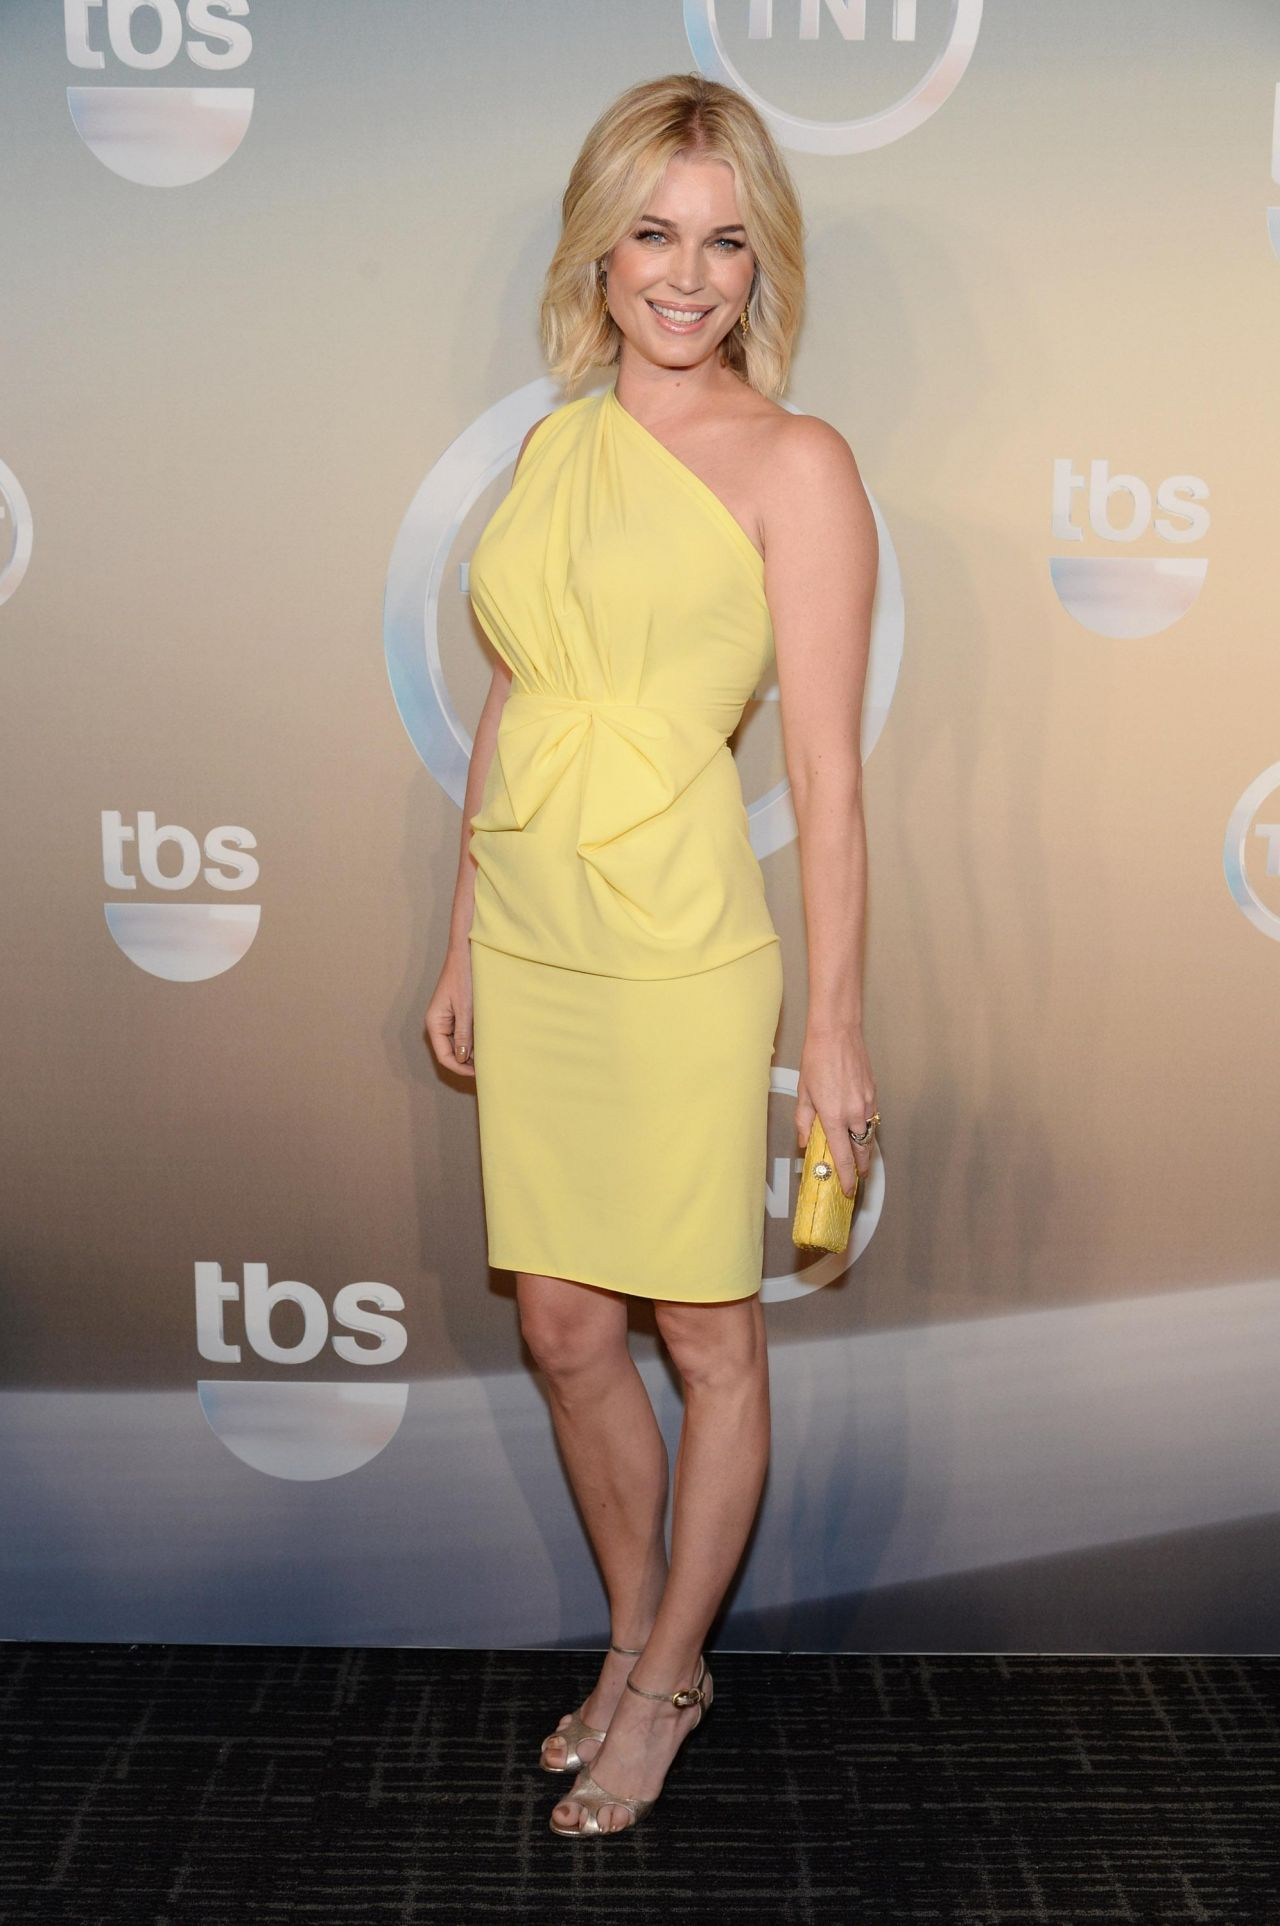 Rebecca Romijn At Tbs Tnt Upfront 2014 In New York City